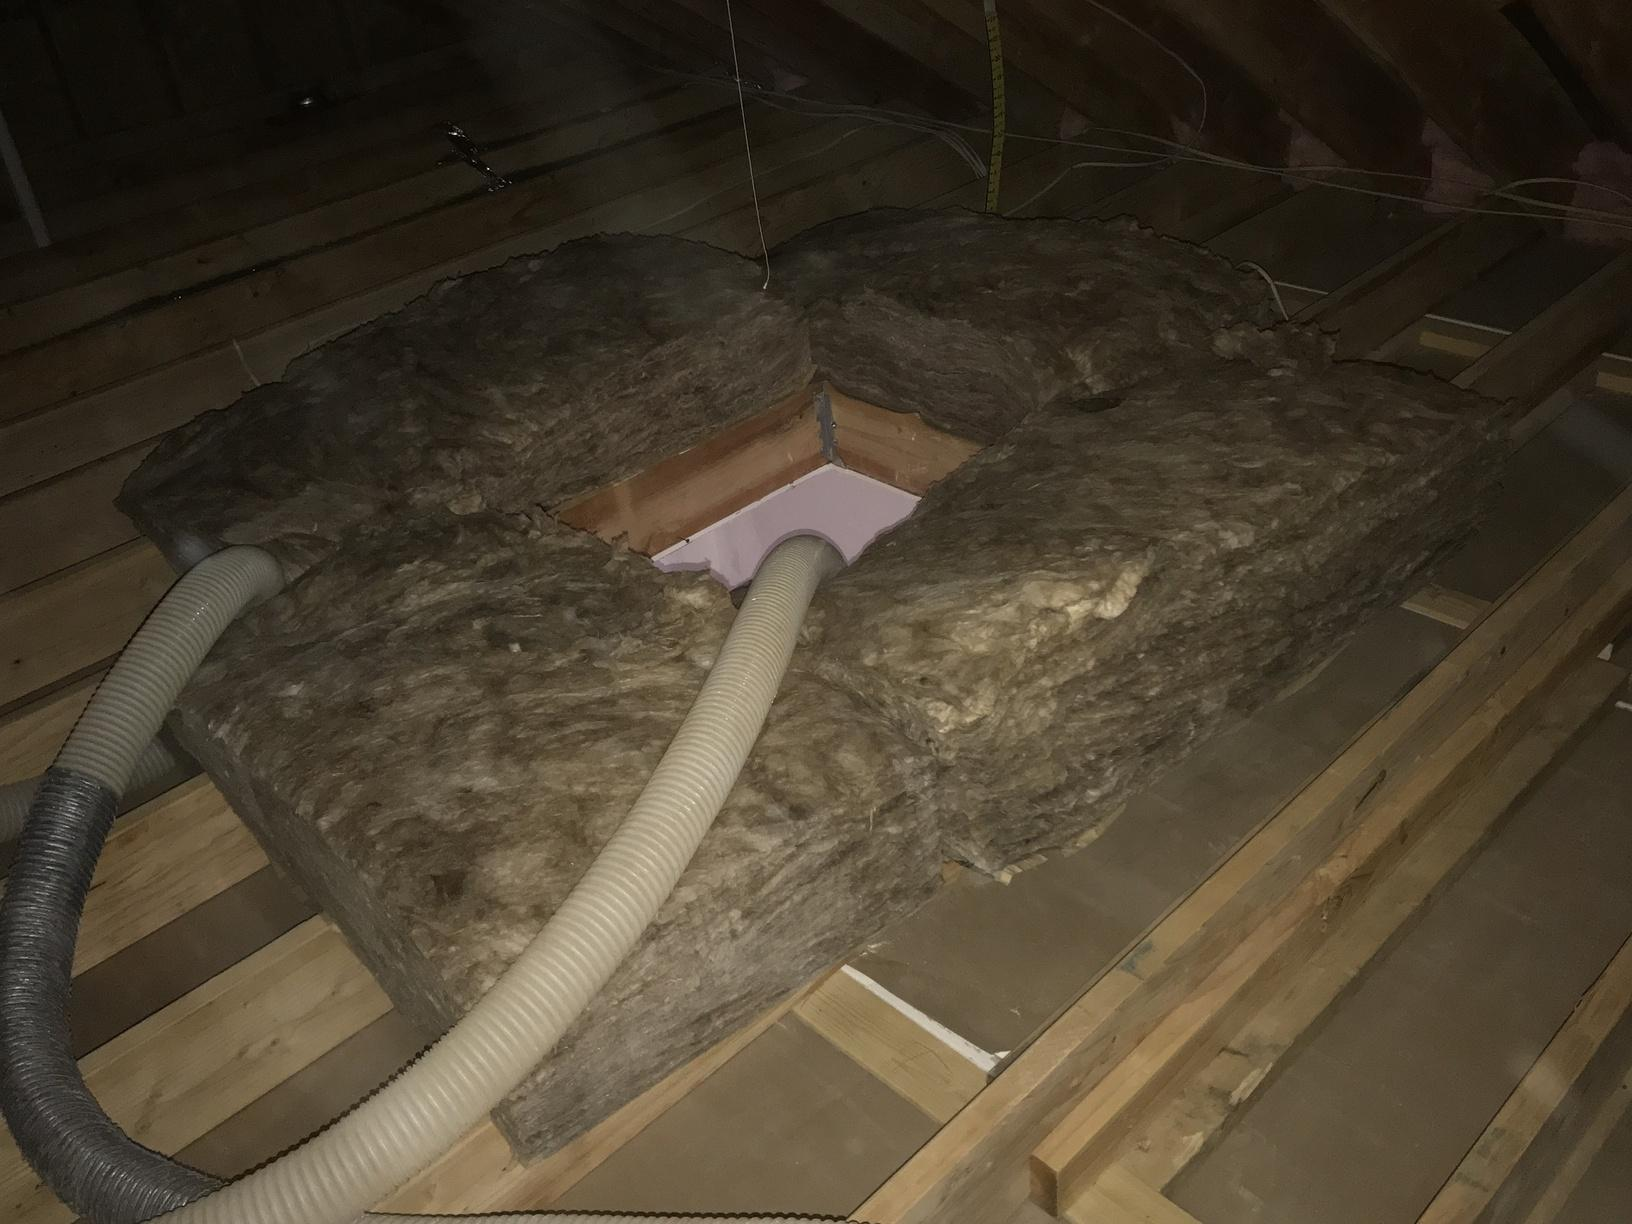 Unfaced fiberglass batts being used as a dam around the scuttle hatch